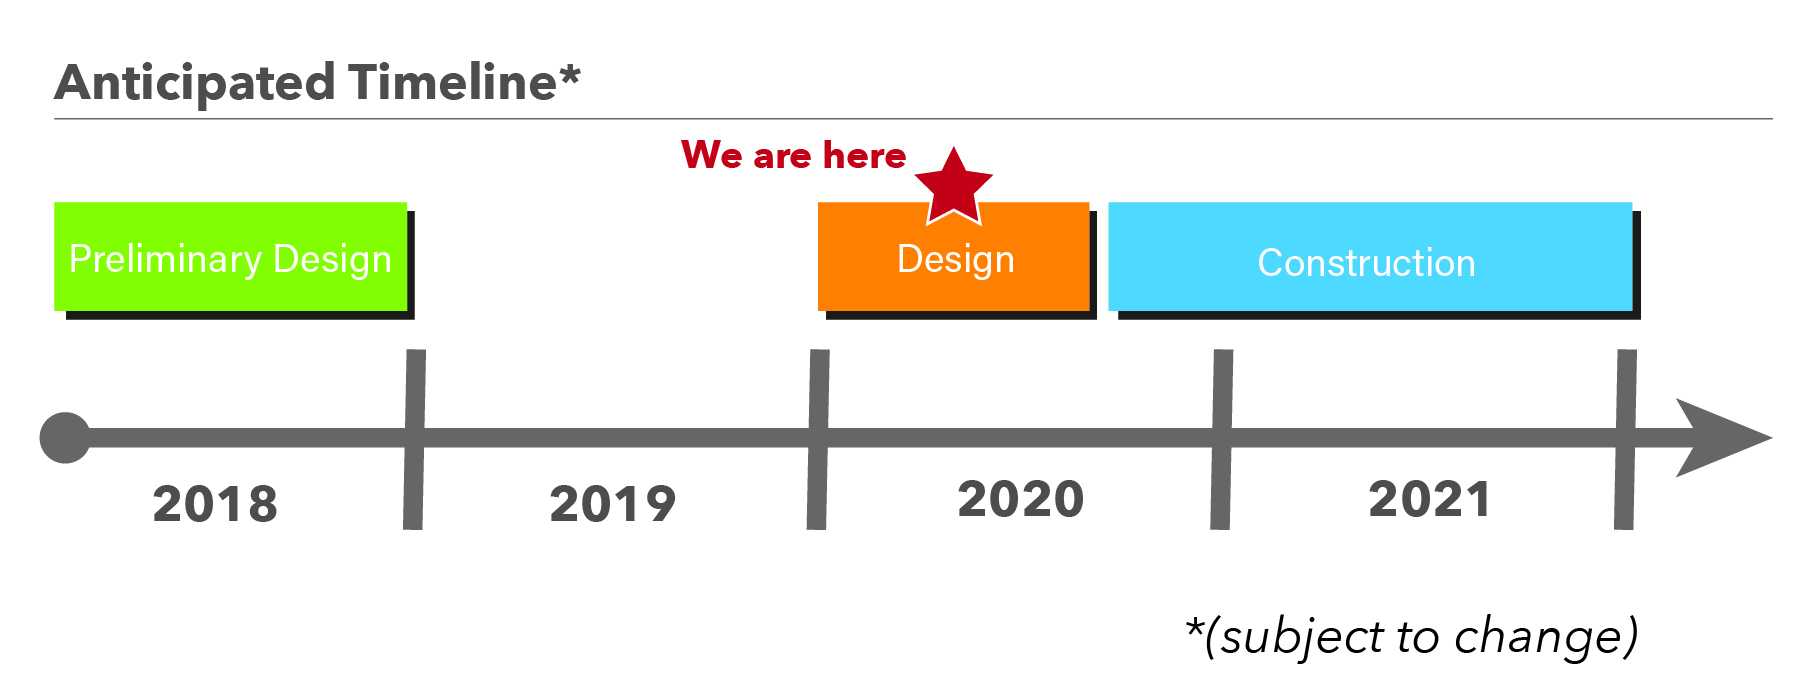 anticipated timeline subject to change. 2018 is preliminary design phase. 2020 is design phase. 2020 to 2021 is construction phase.